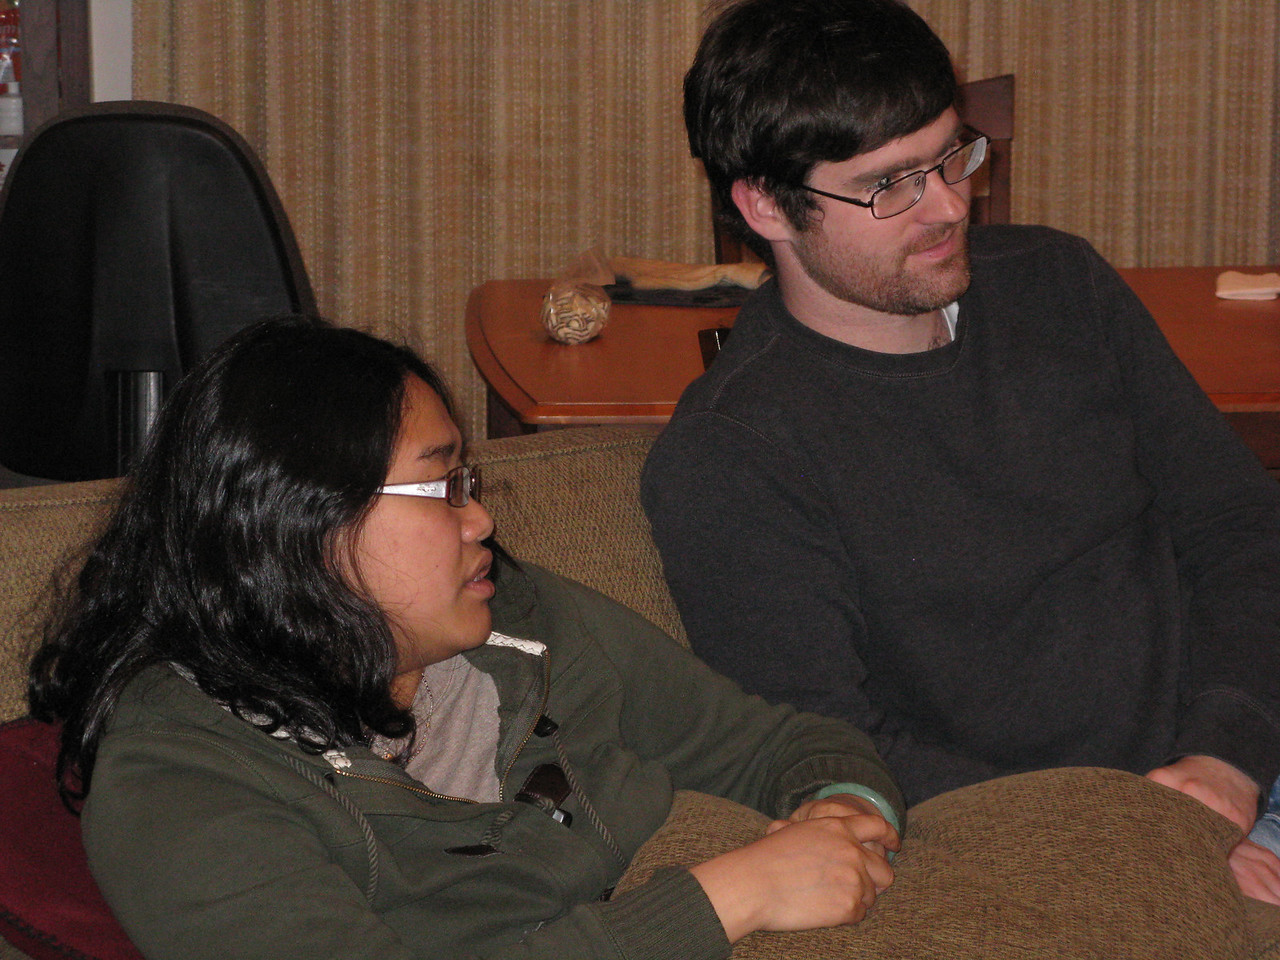 Christy and Robert.  Robert has a wide range of interests and knowledge, and conversations are a lot of fun.